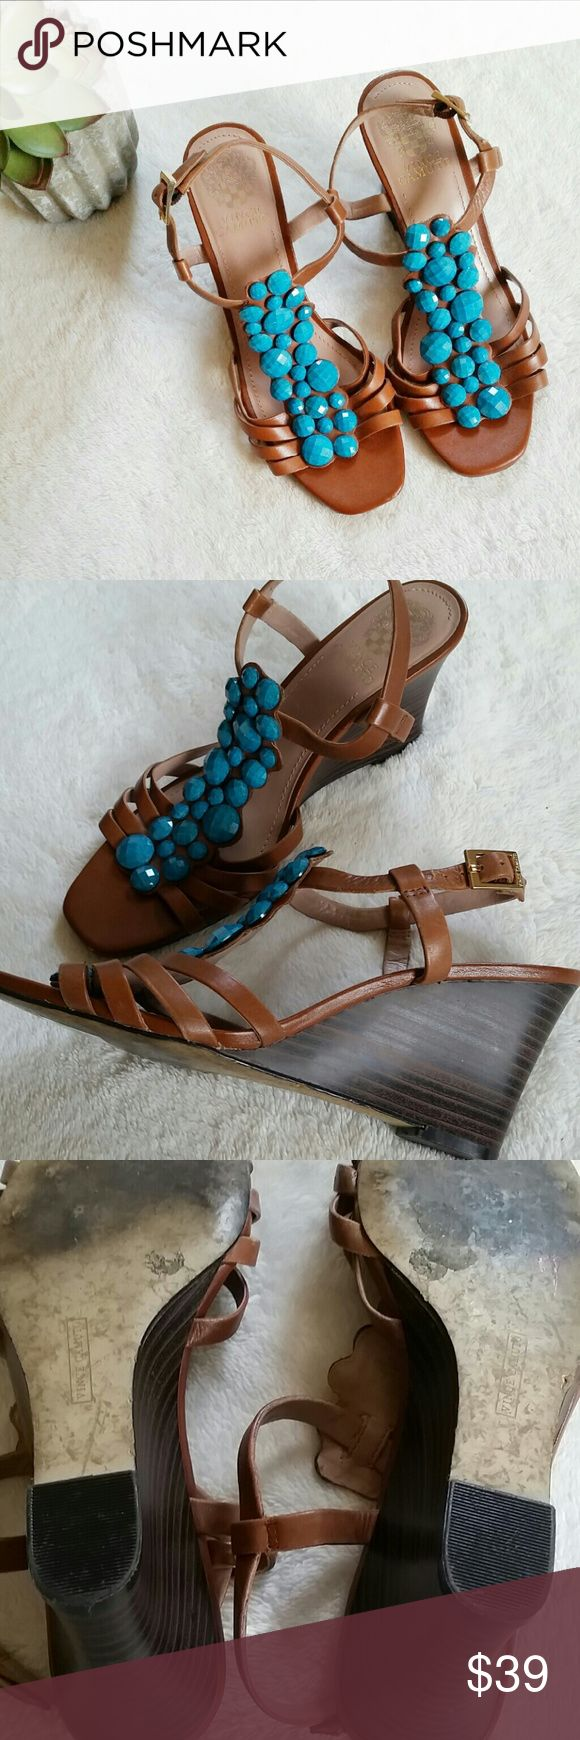 Host Pick! Vince Camuto Turquoise Wedges Vince Camuto Turquoise Wedges. Size 7.5W. 3 inch heels. Tiny scratches on few spots and normal signs of few uses but other than that, in great pre-loved condition. Vince Camuto Shoes Sandals